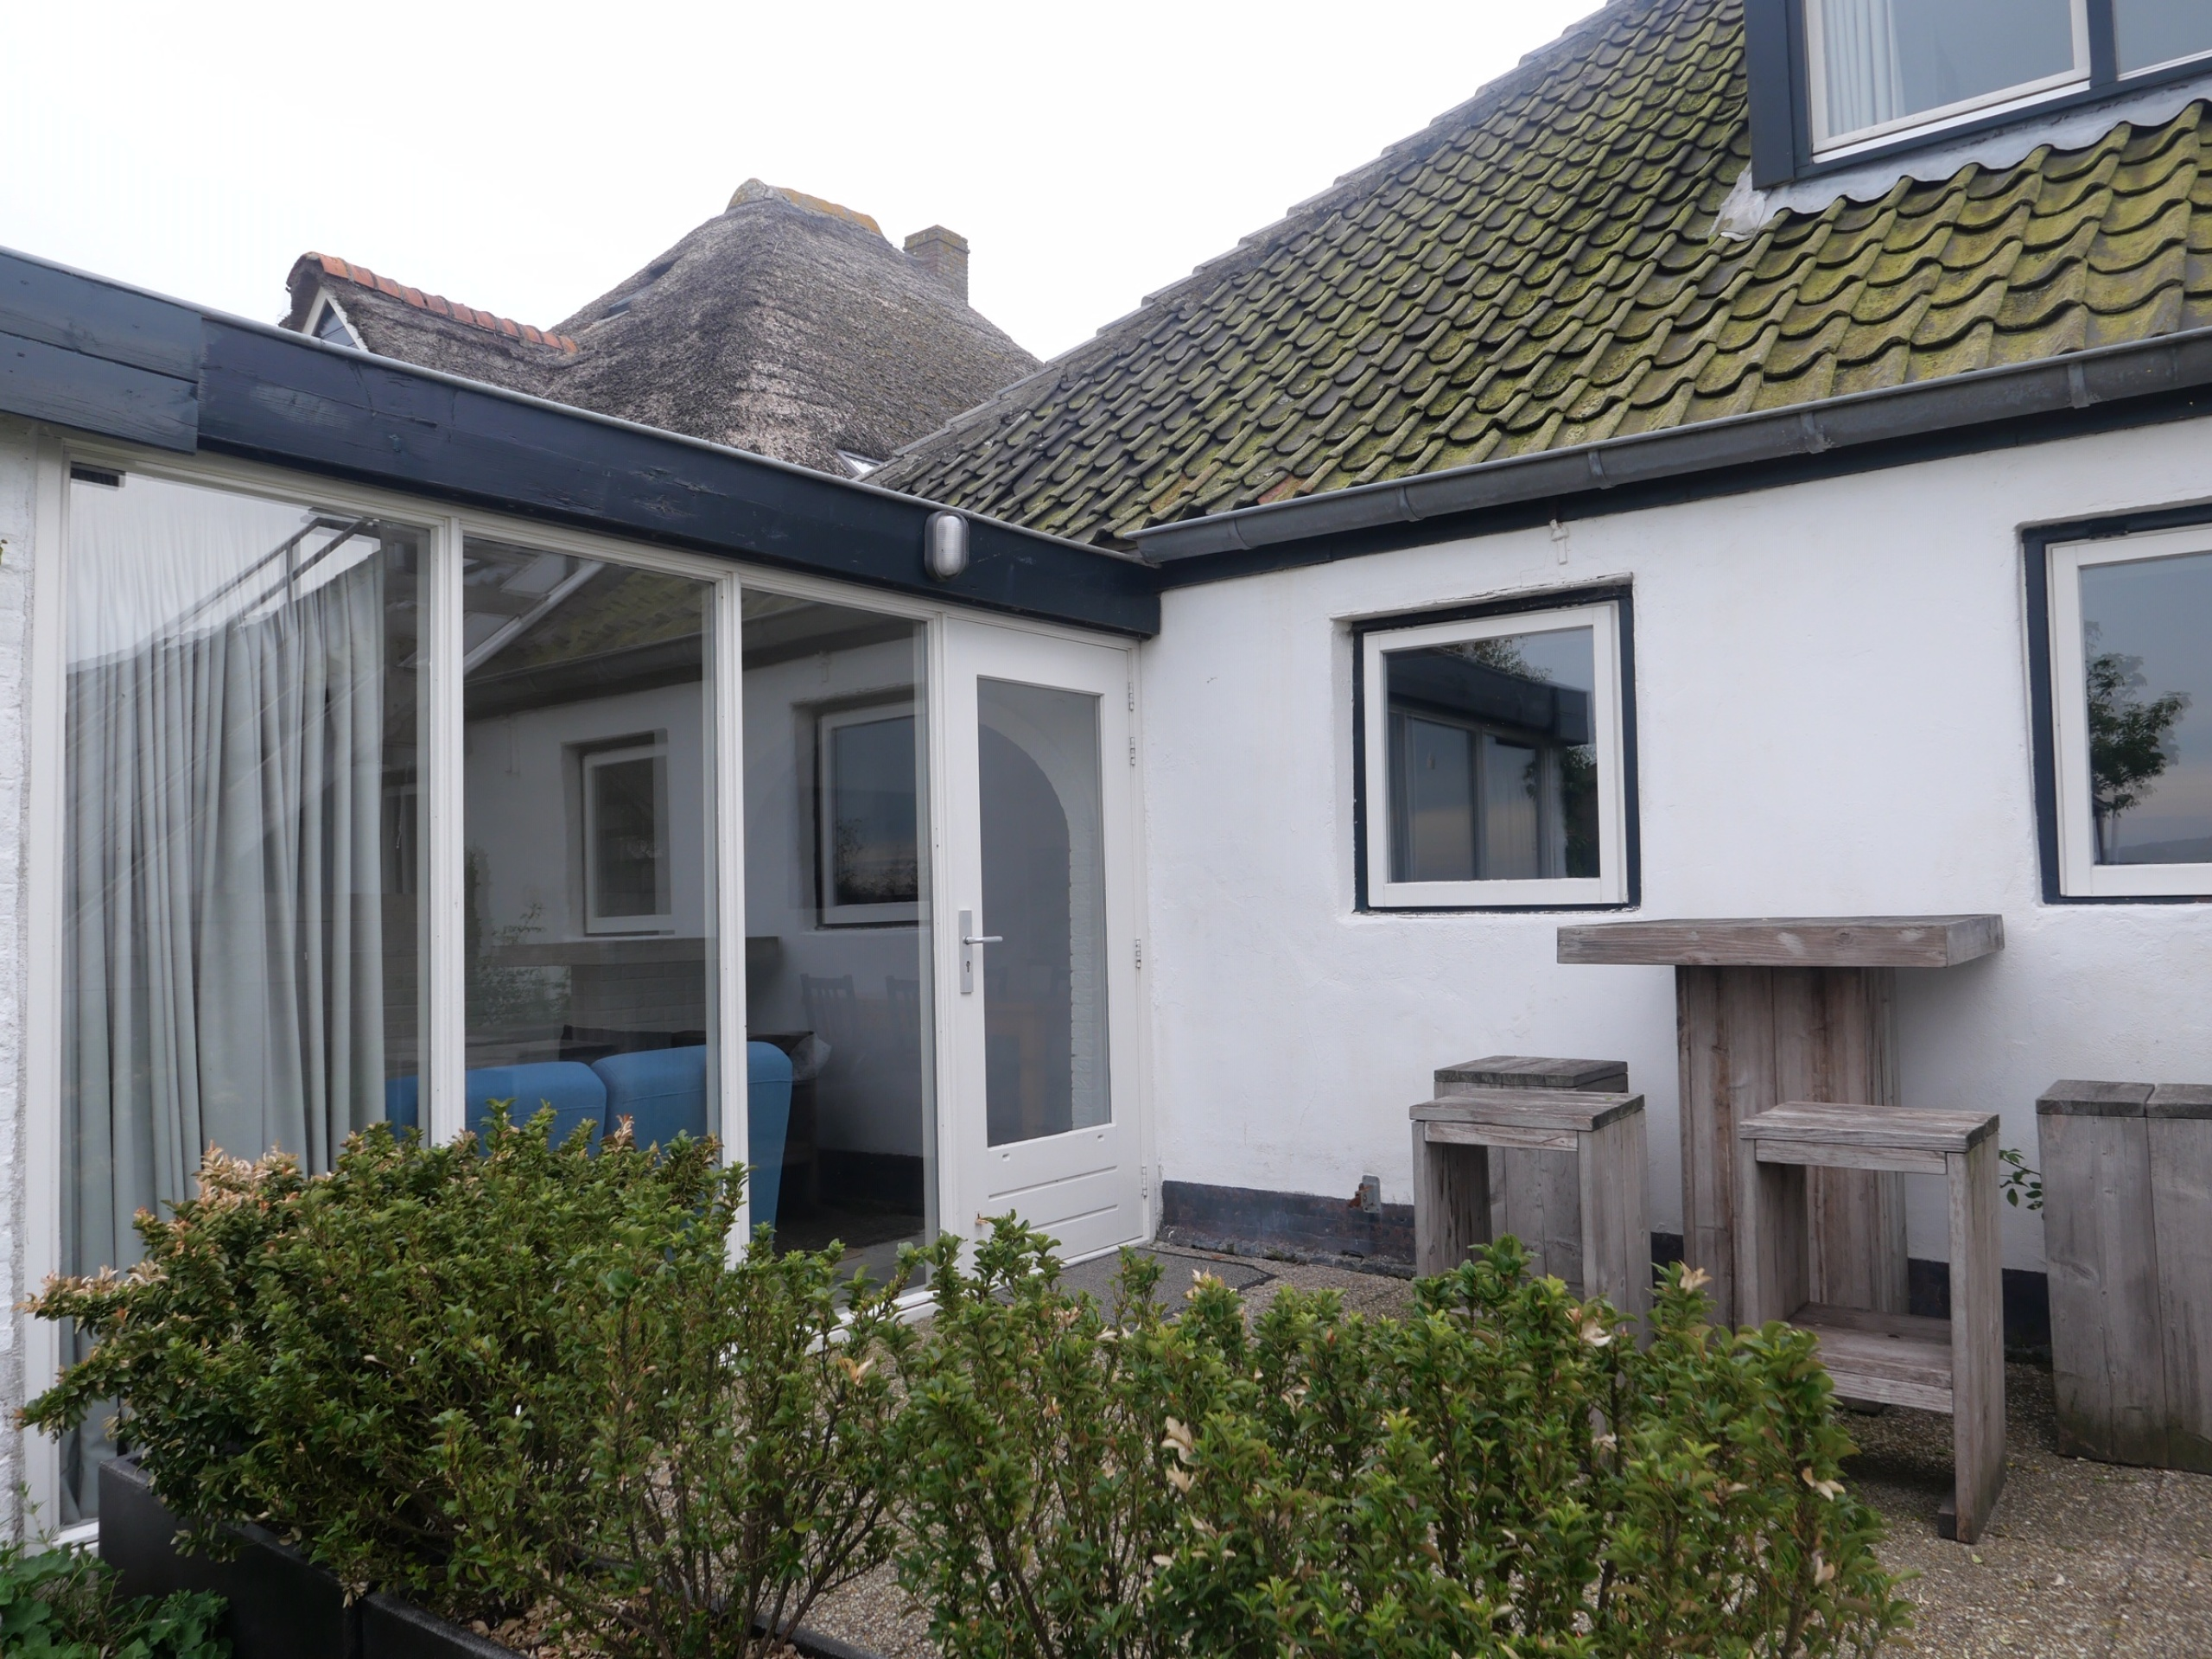 Holiday home in a farmhouse in Den Hoorn, 10 minutes from the beach